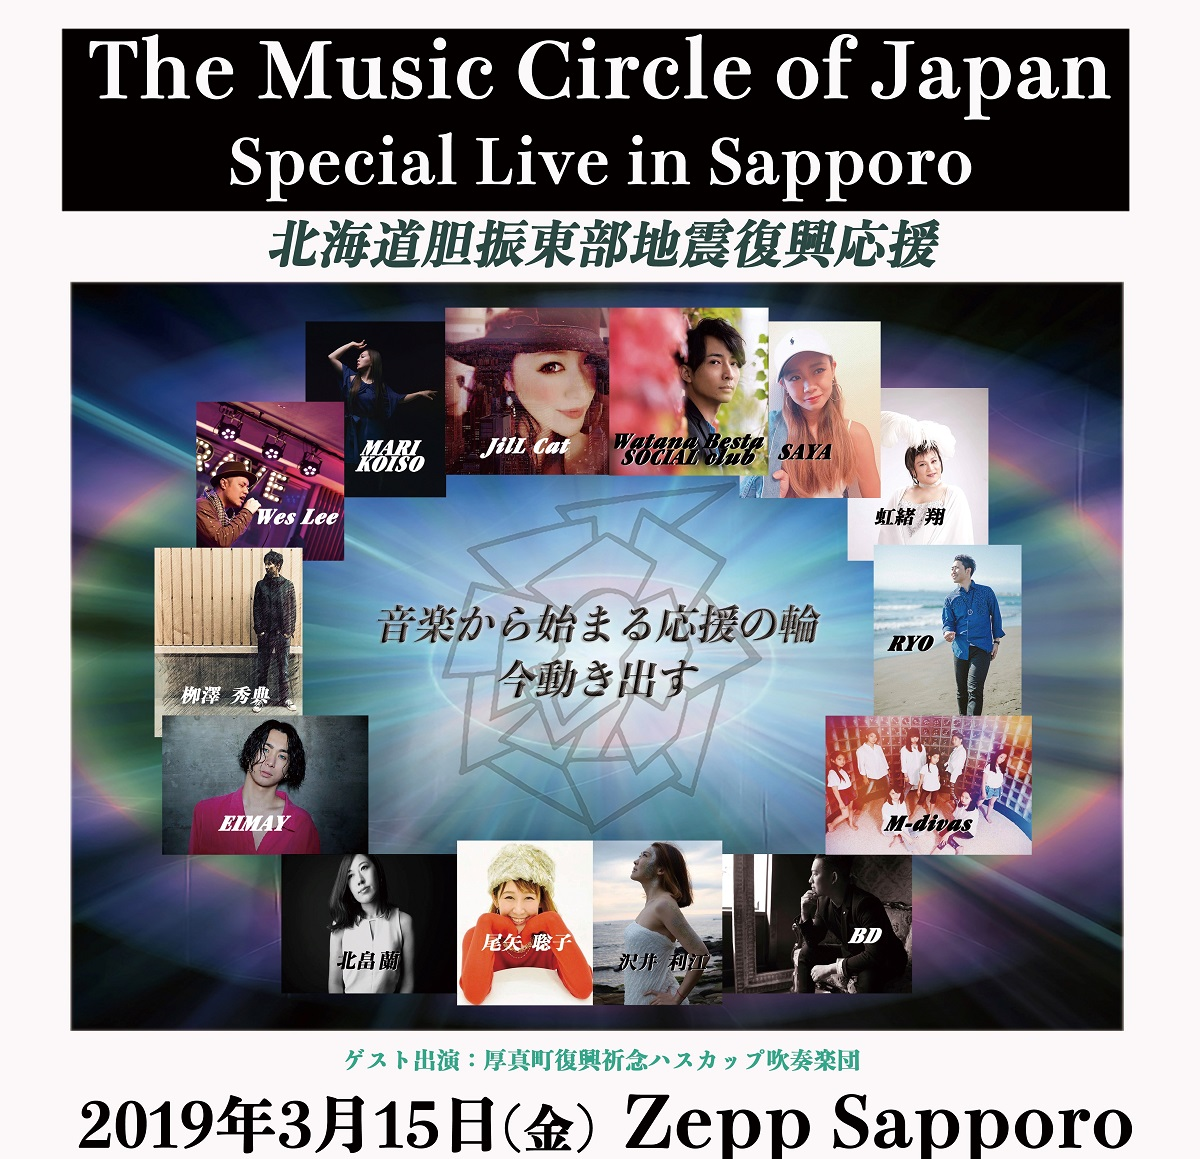 The Music Circle of Japan